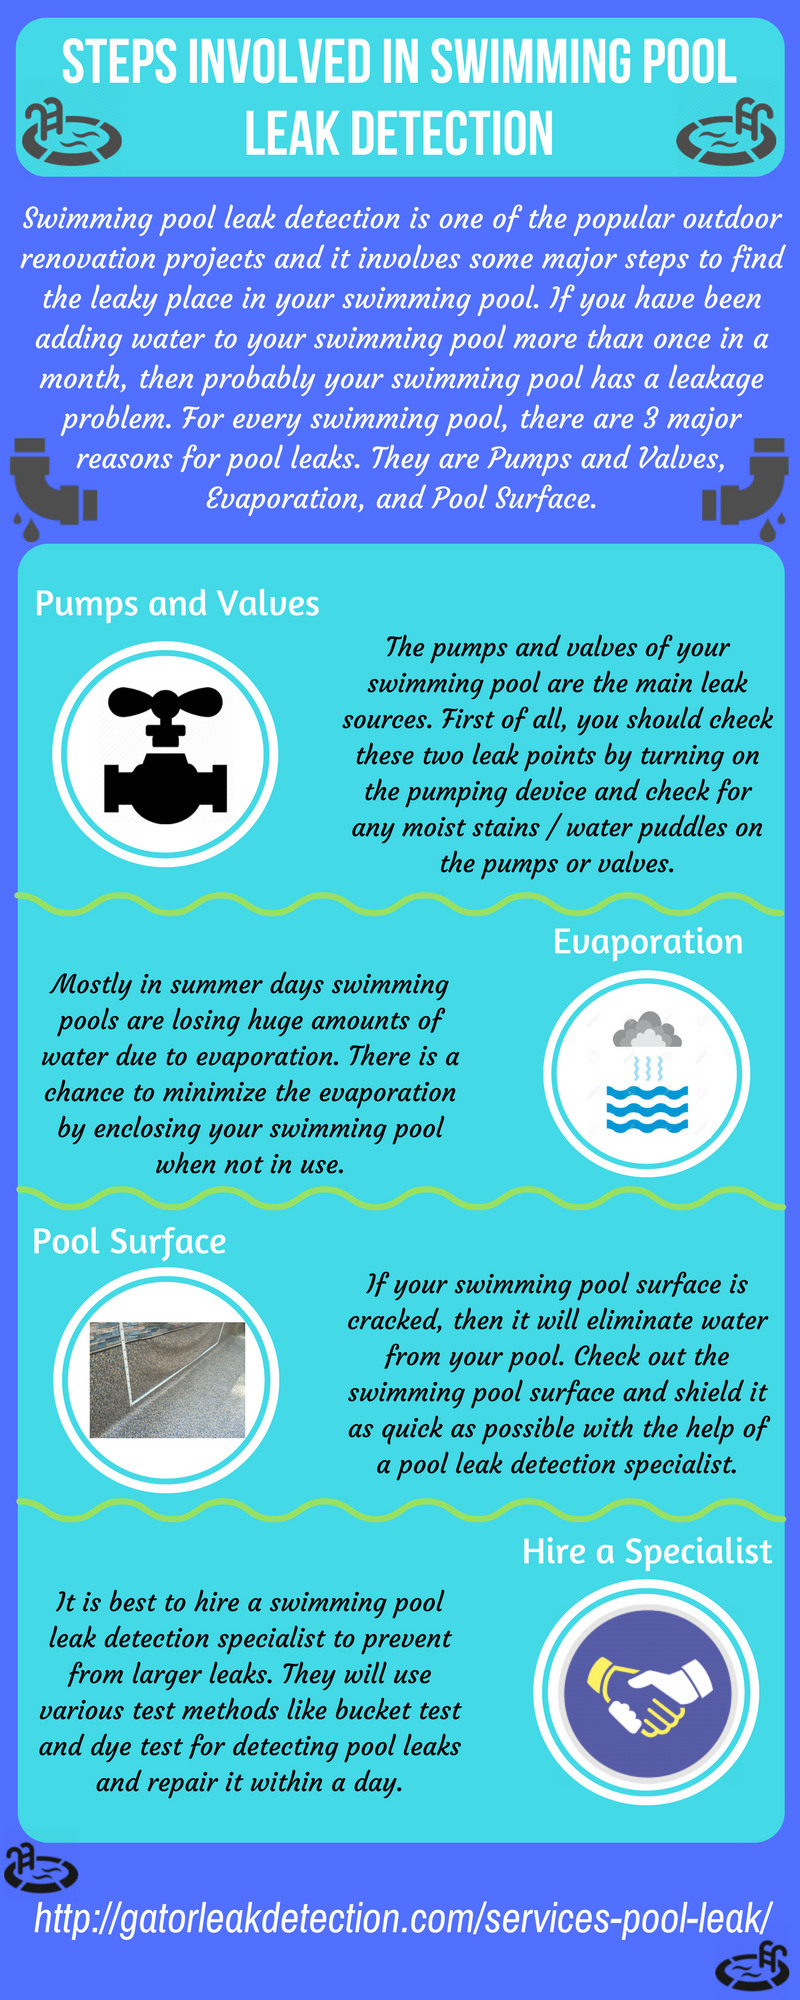 steps-involved-in-swimming-pool-leak-detection-infographic-galleryr